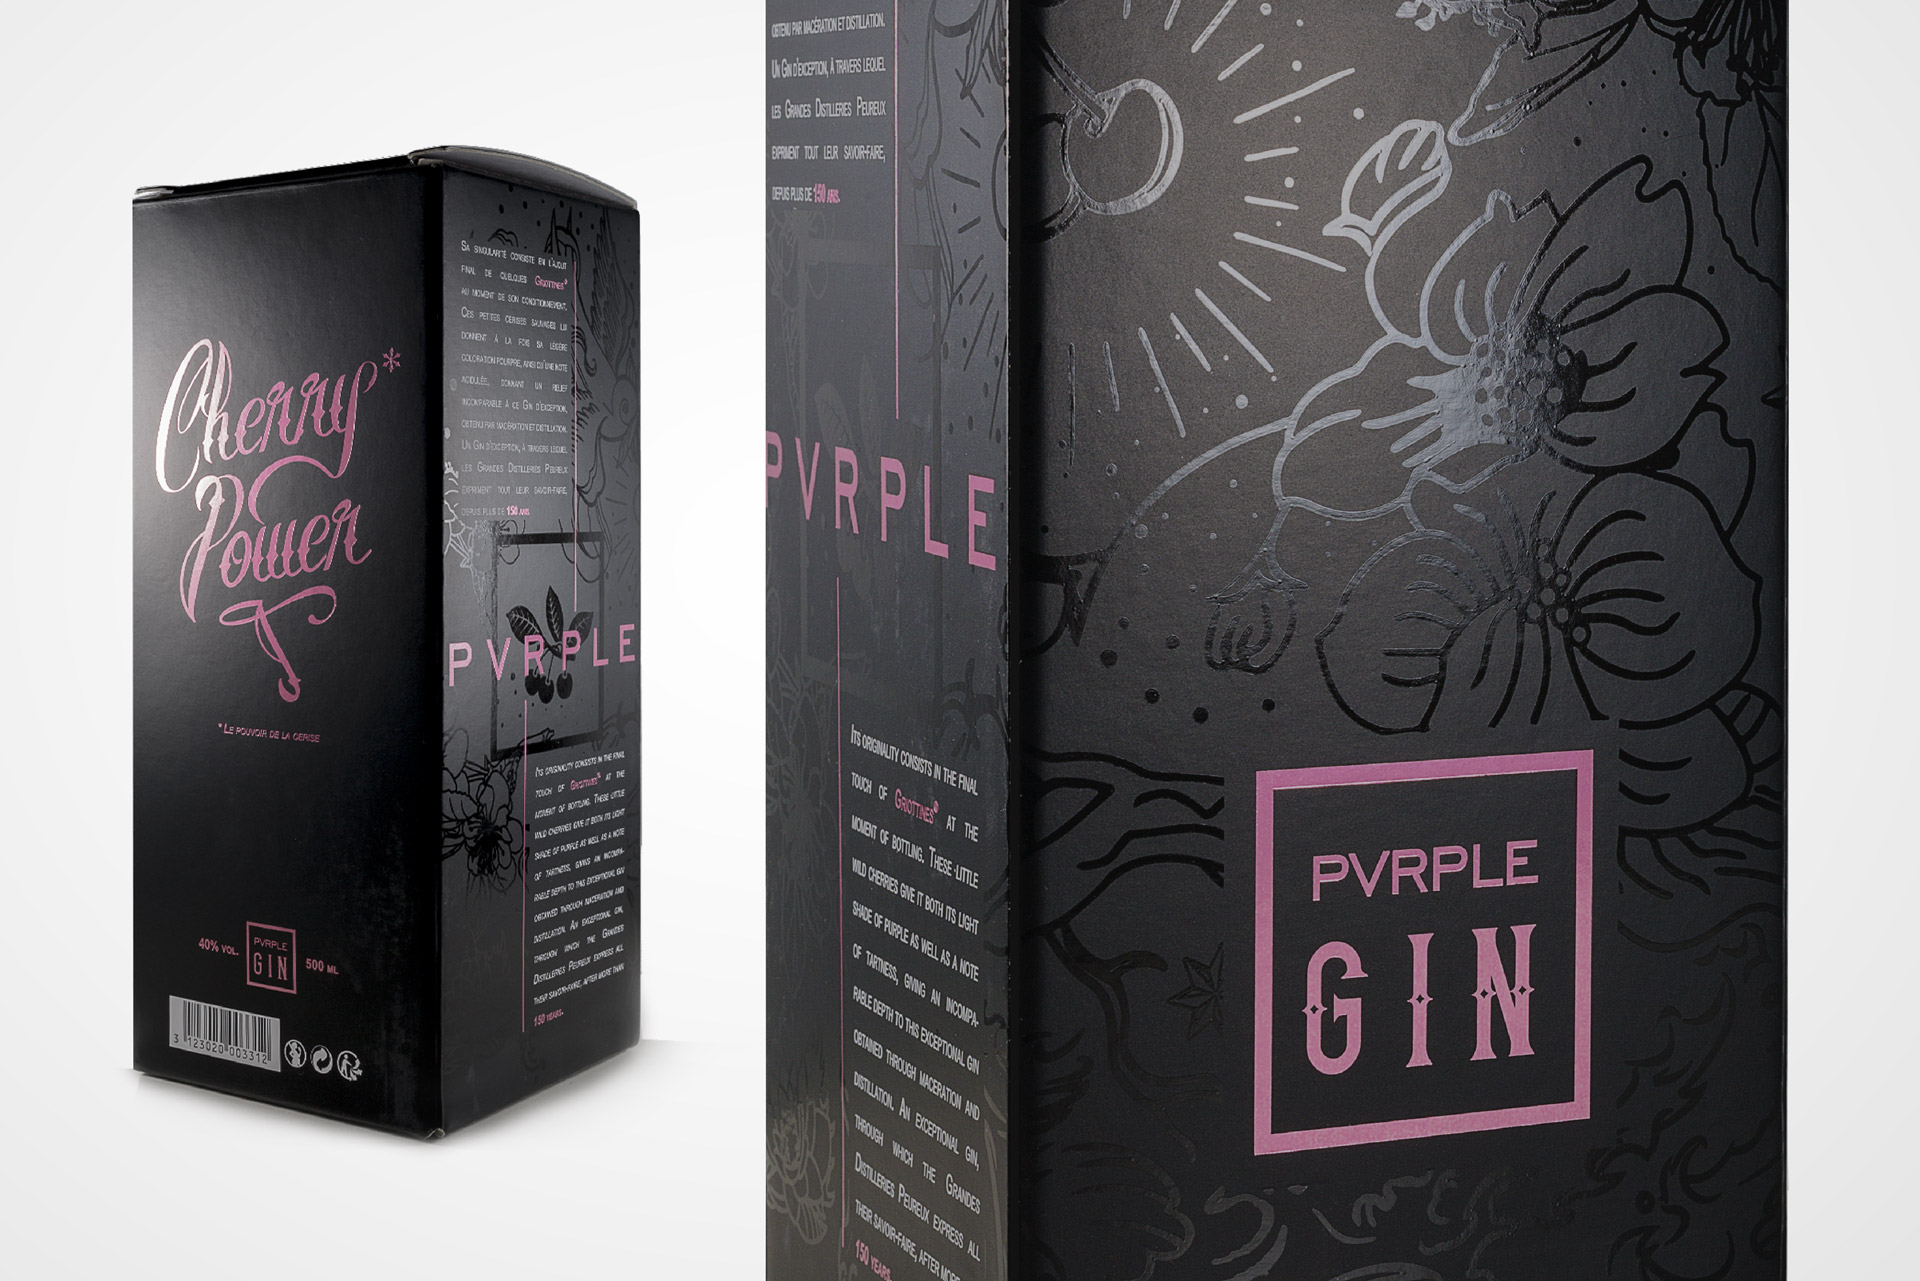 Packaging design Pvrple Gin